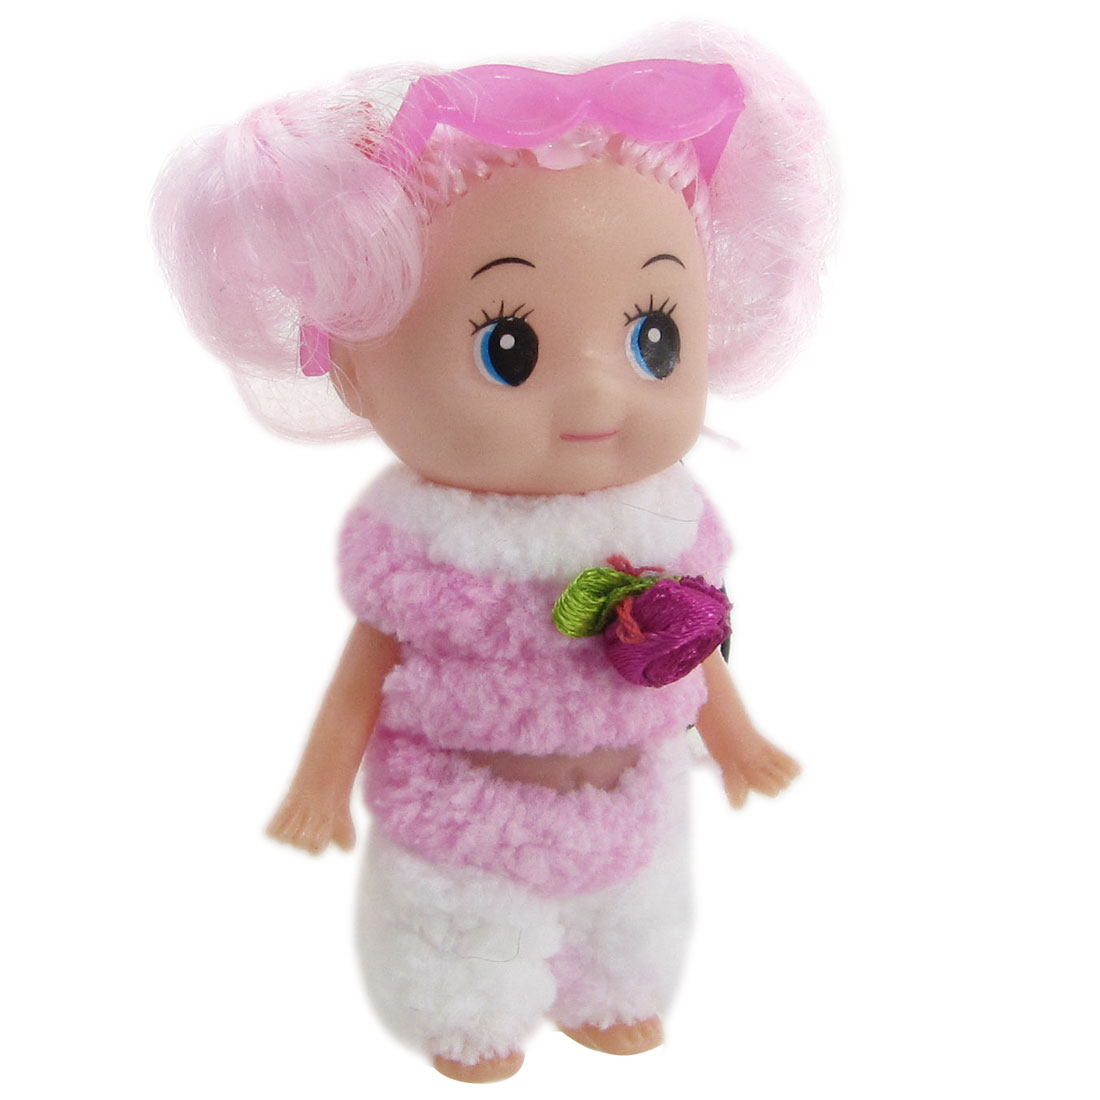 Light Pink White Plush Clothes Designed Doll Pendant for Handbag